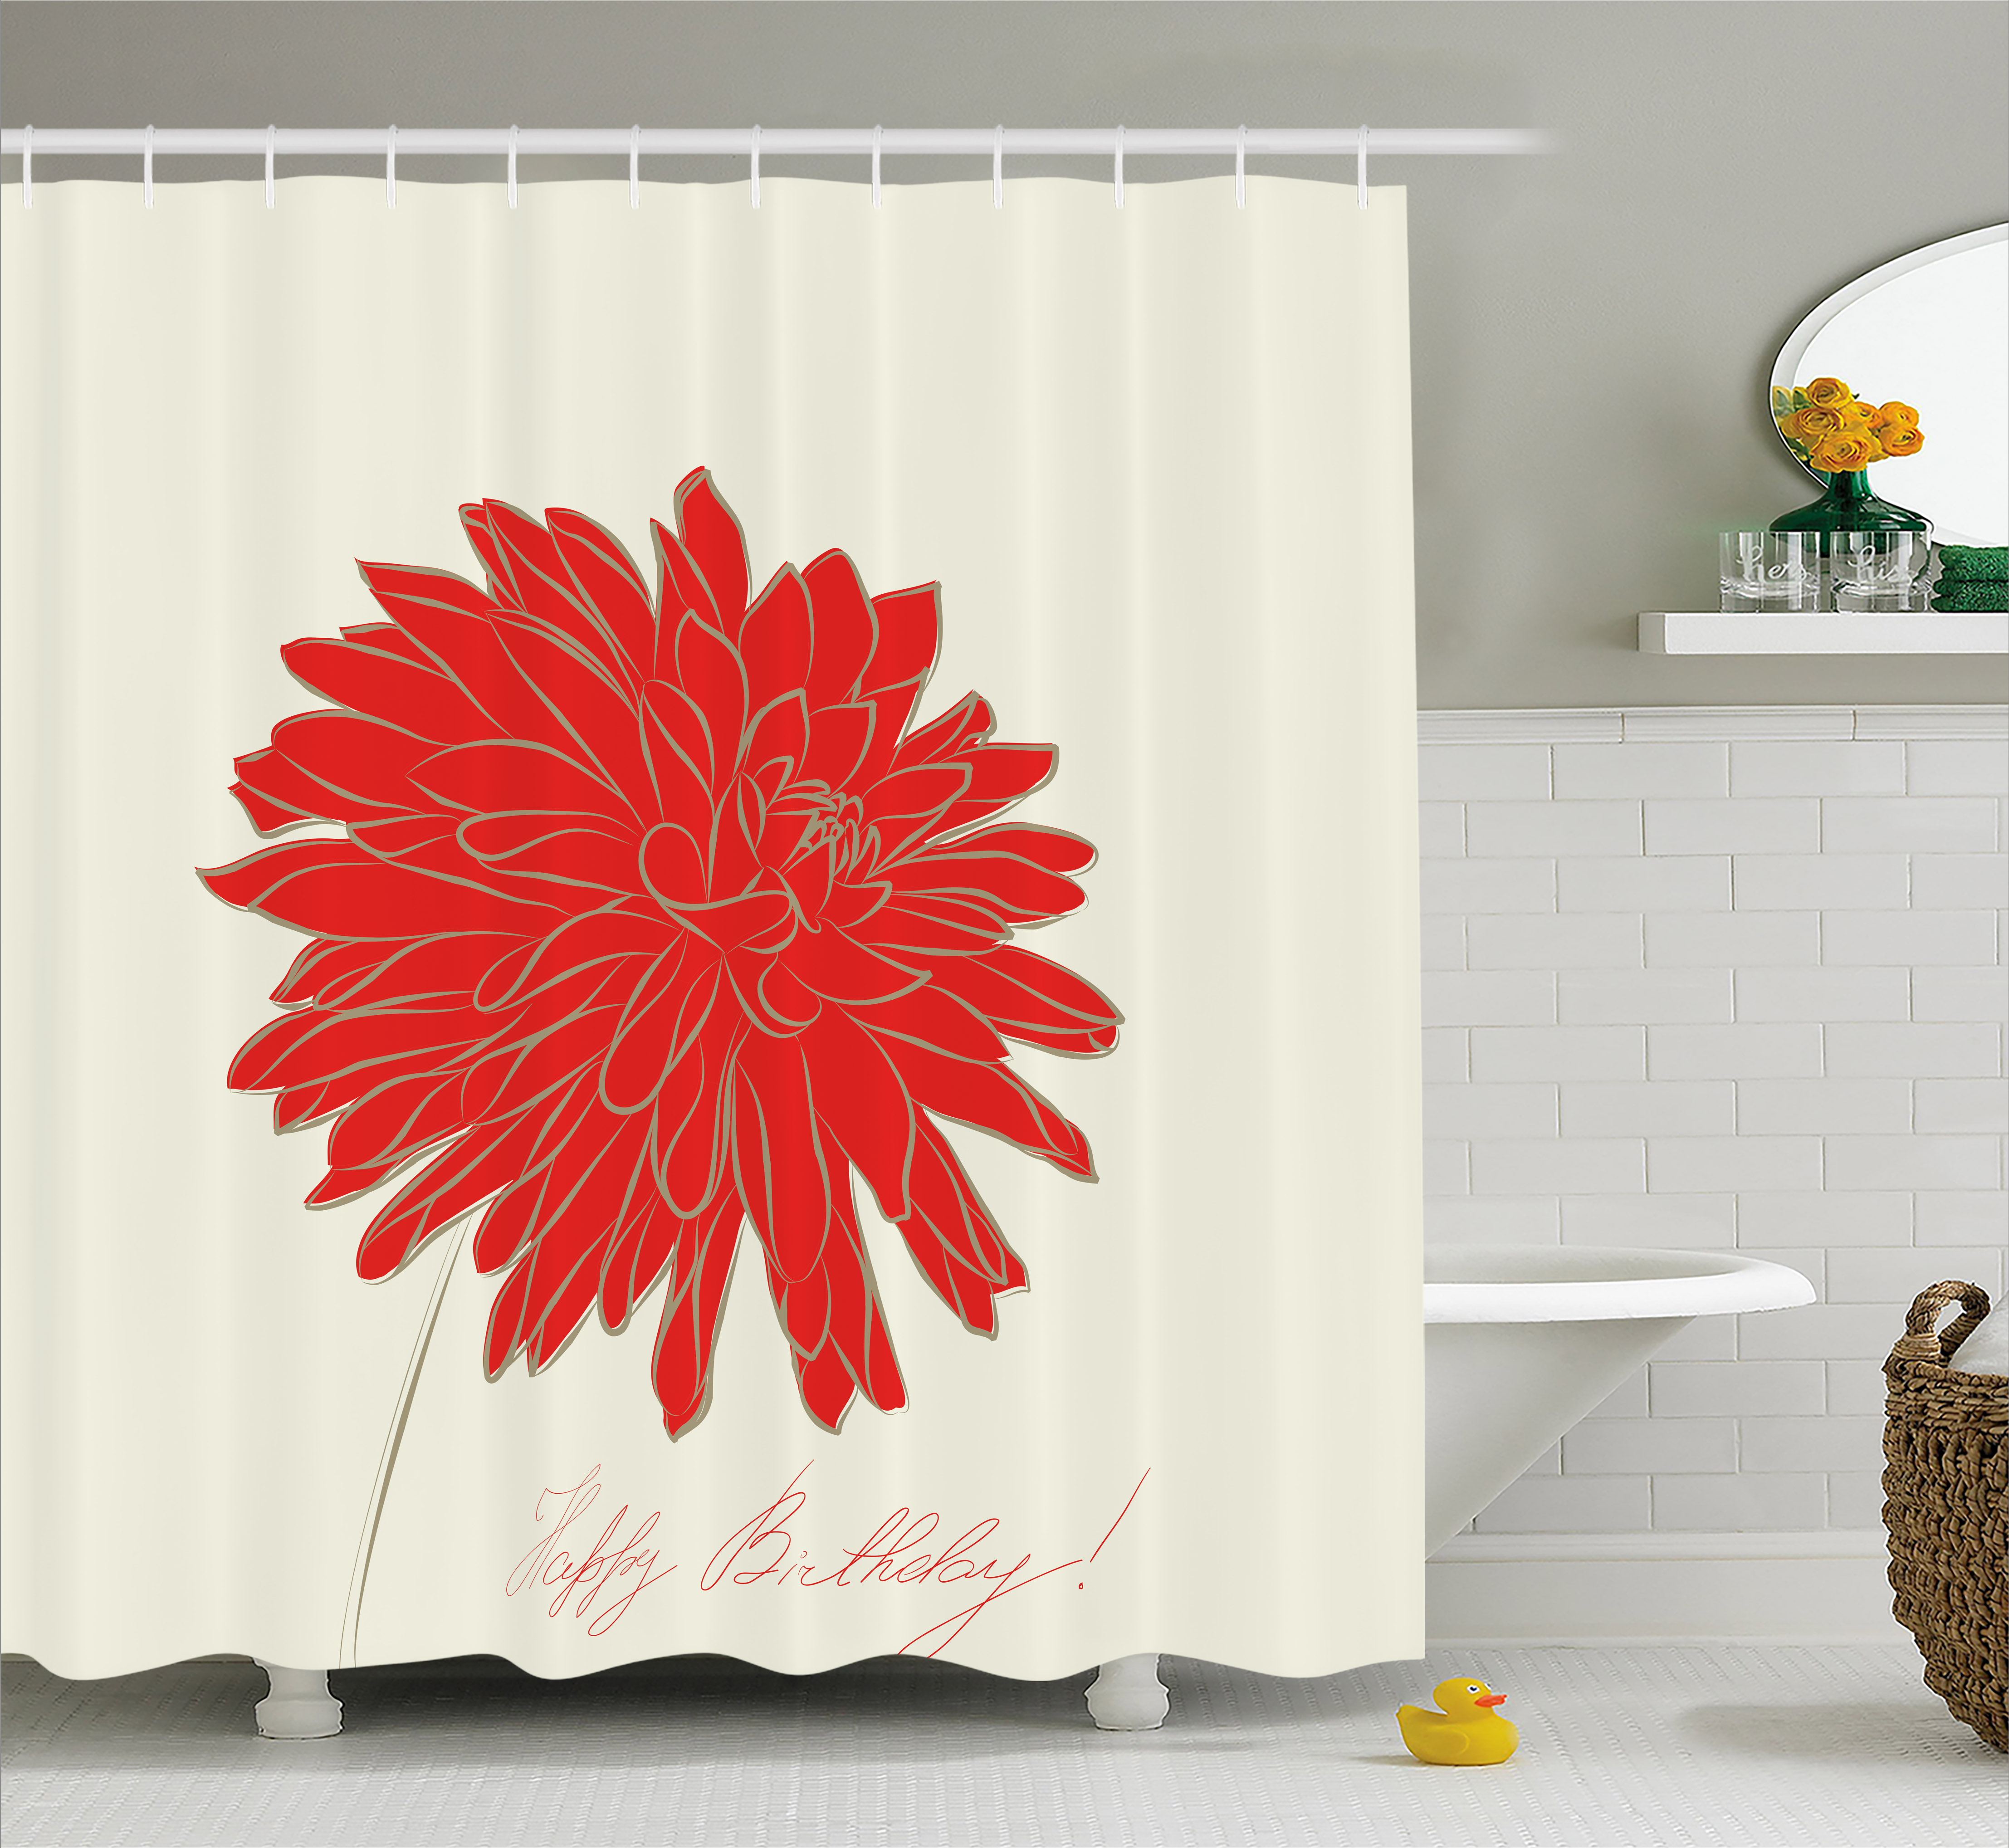 Shower Curtains Vintage Red Bicycle Flowers Shower Curtain